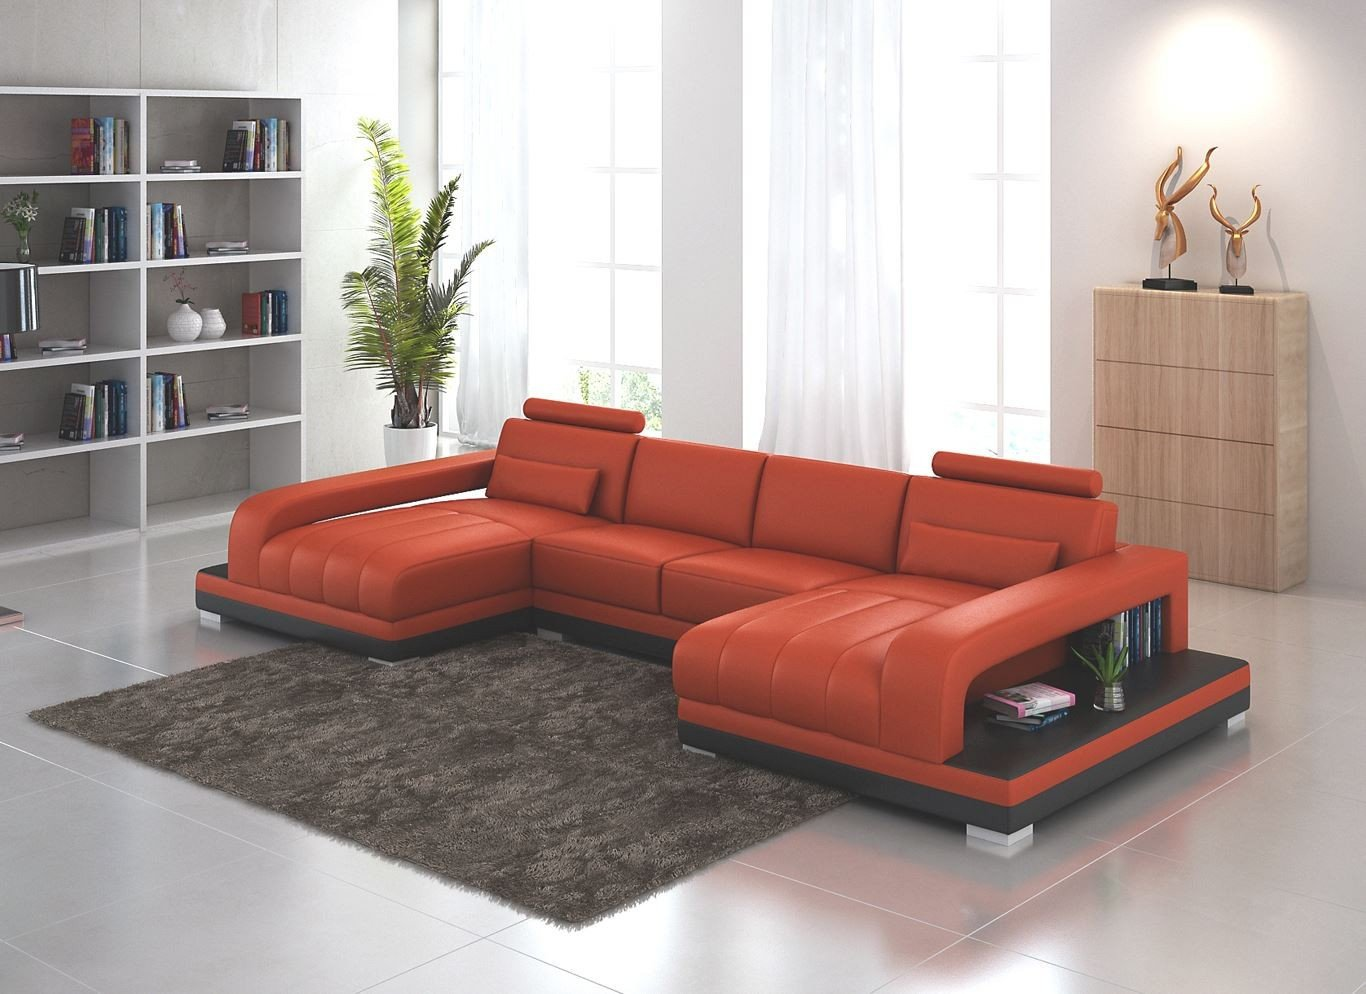 Comfortable Living Room Chaise Lounge Beautiful Living Room fortable Double Chaise Sectional for Excellent Living Room sofa Ideas